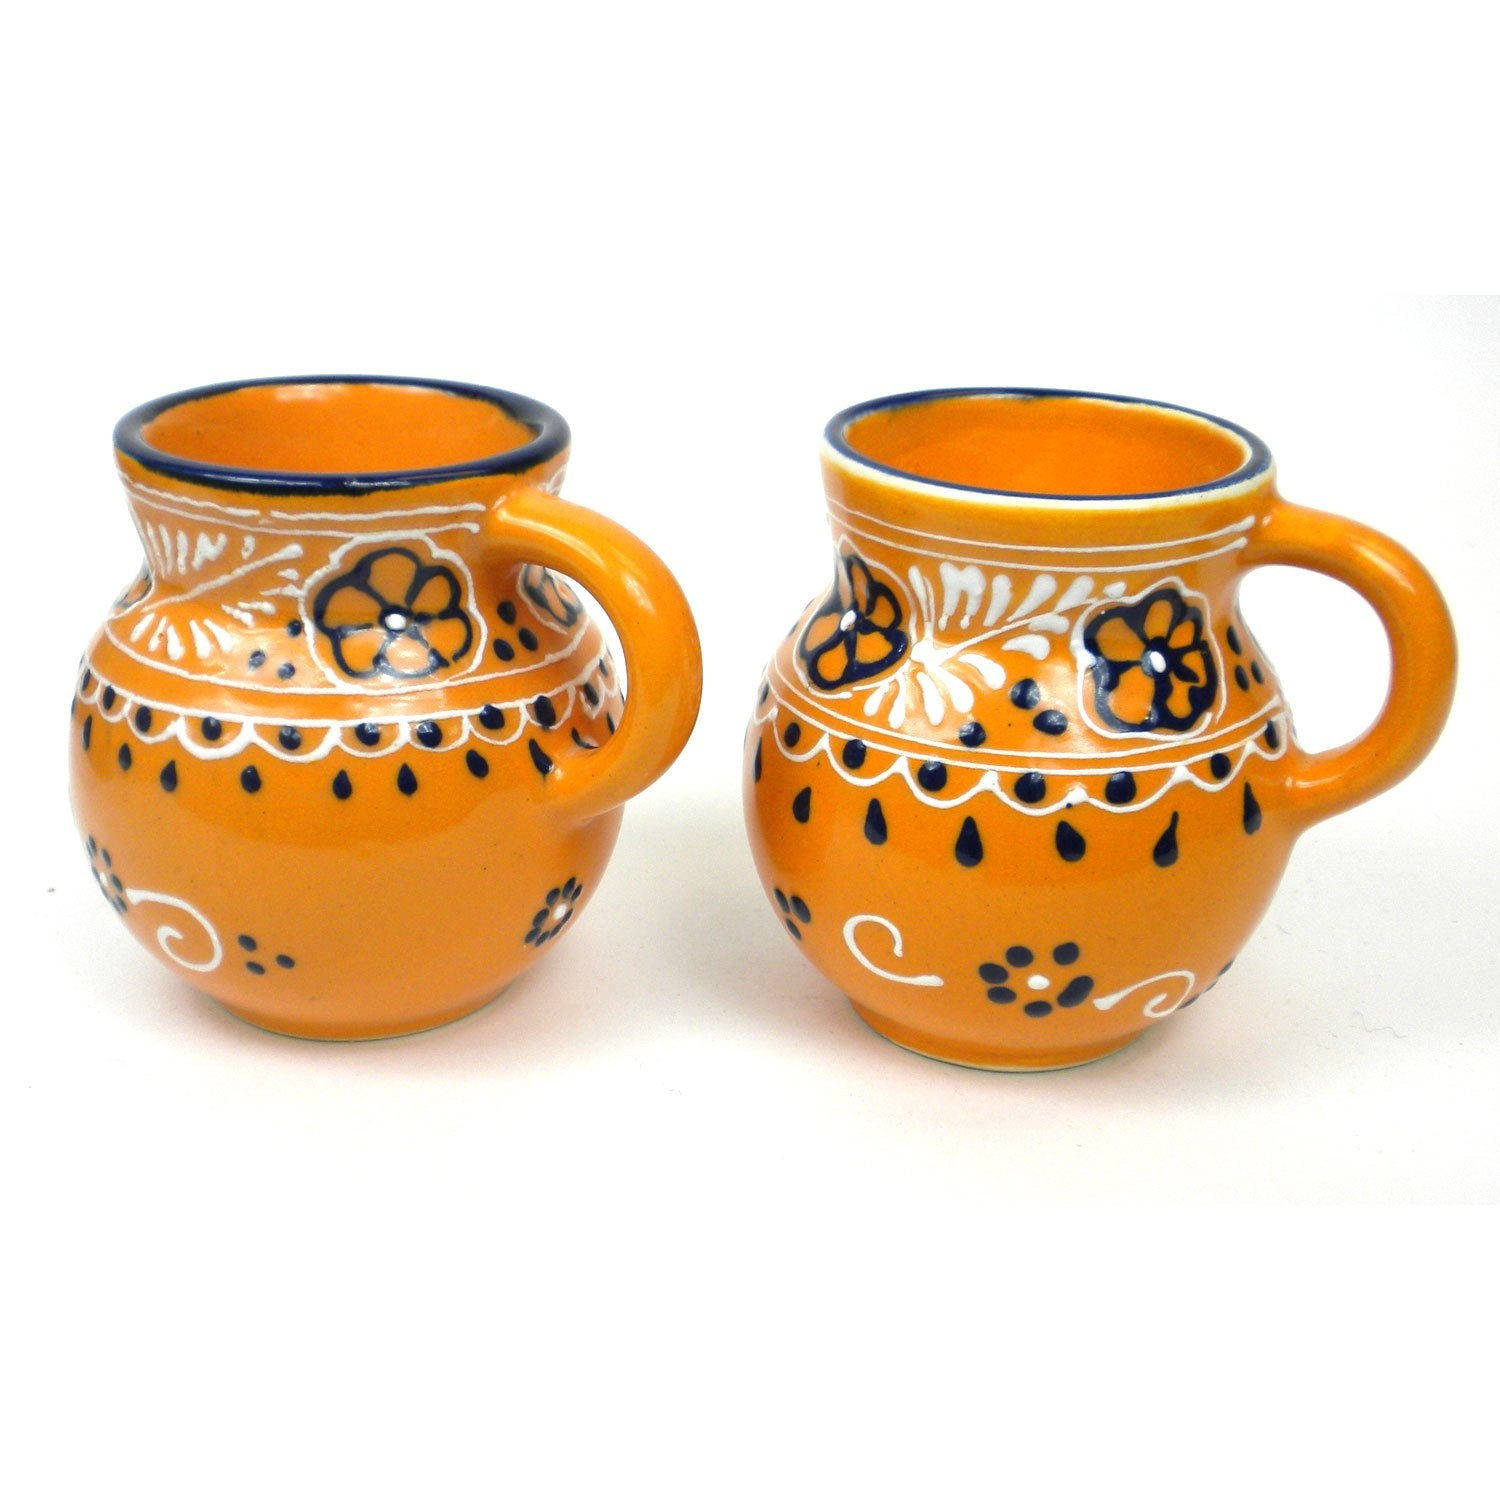 Encantada Handmade Pottery, Set of 2 Mugs, Mango - 12 oz.